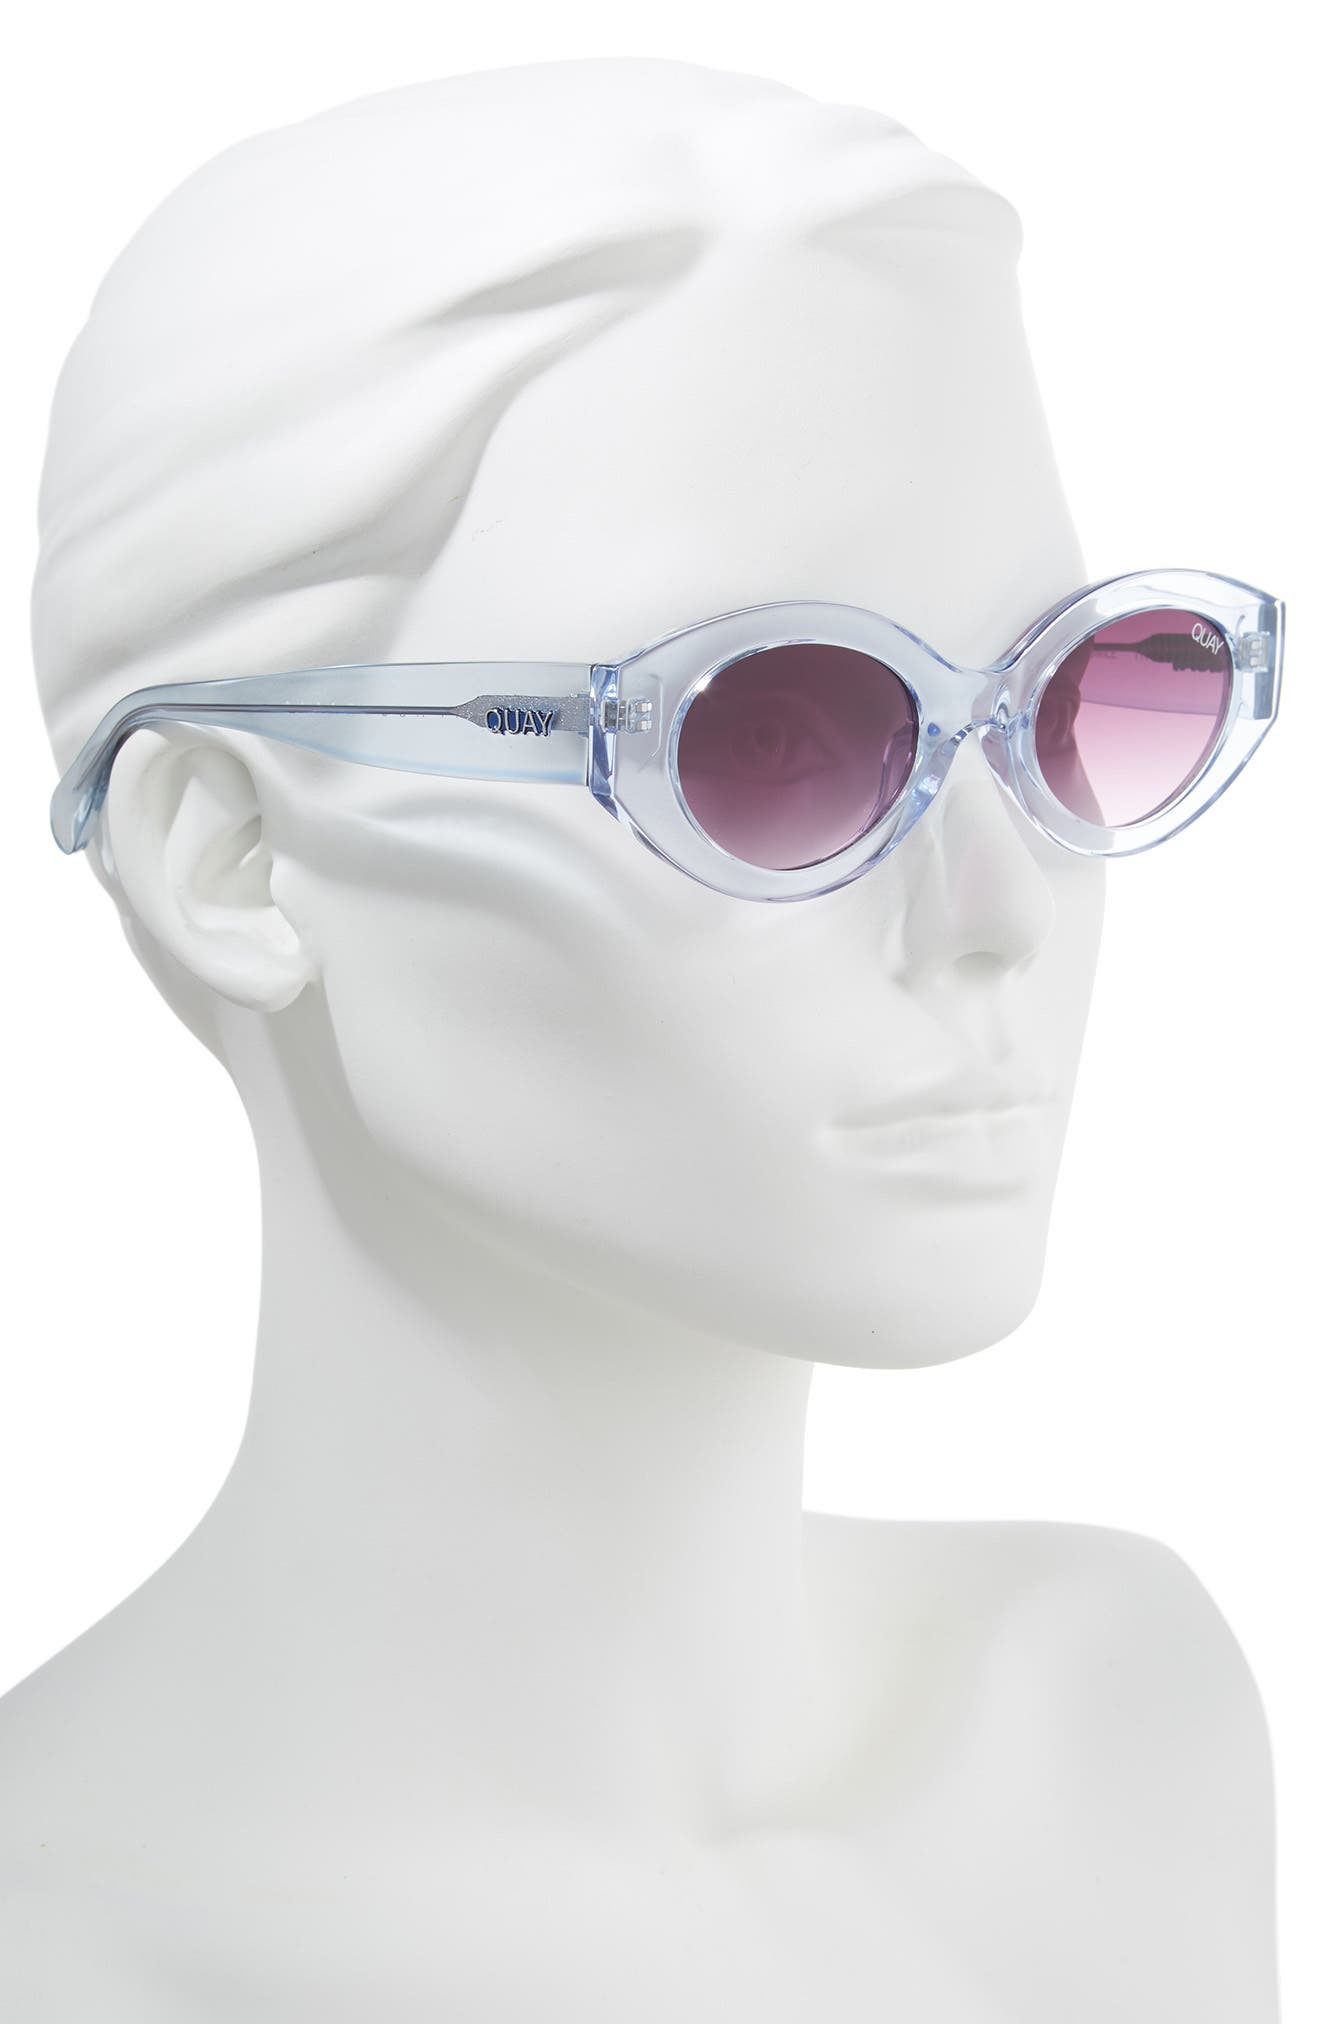 See Me Smile 50mm Cat Eye Sunglasses,                             Alternate thumbnail 2, color,                             BLUE/ PURPLE